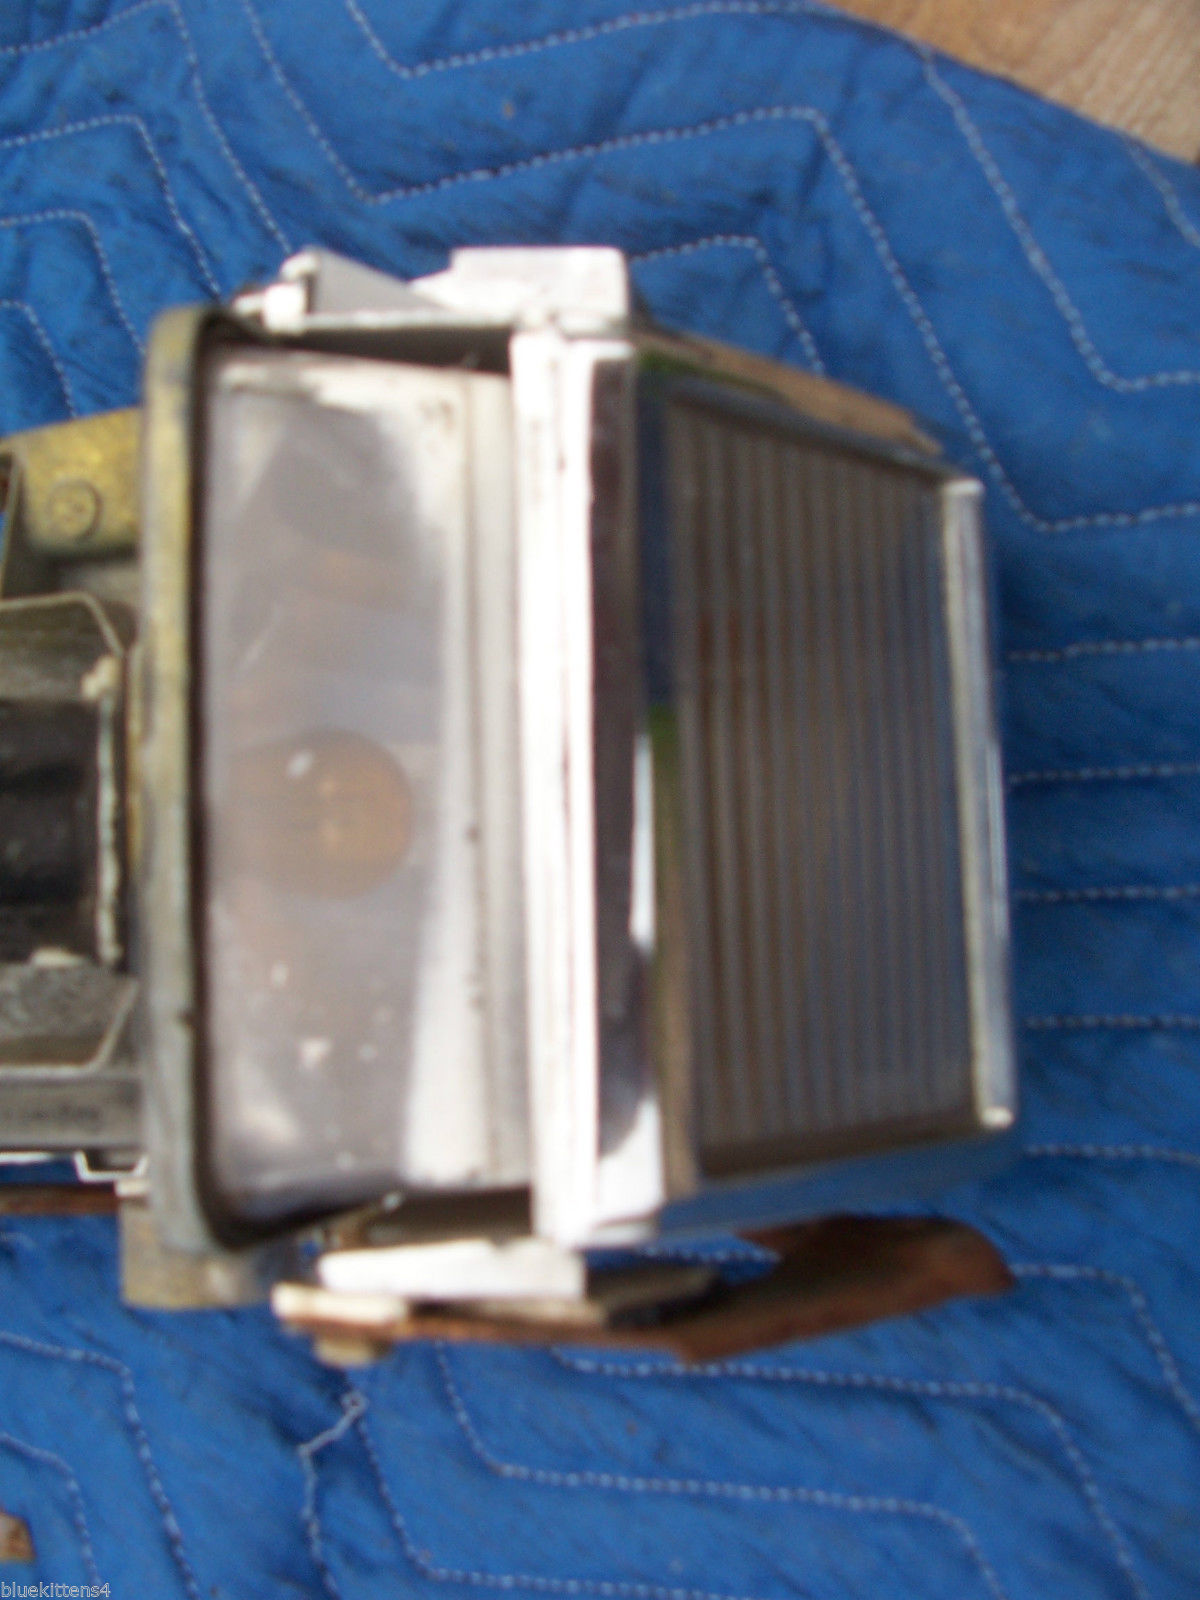 1973 ELDORADO LEFT CORNER MARKER LIGHT TURN SIGNAL OEM USED ORIG CADILLAC GM PRT